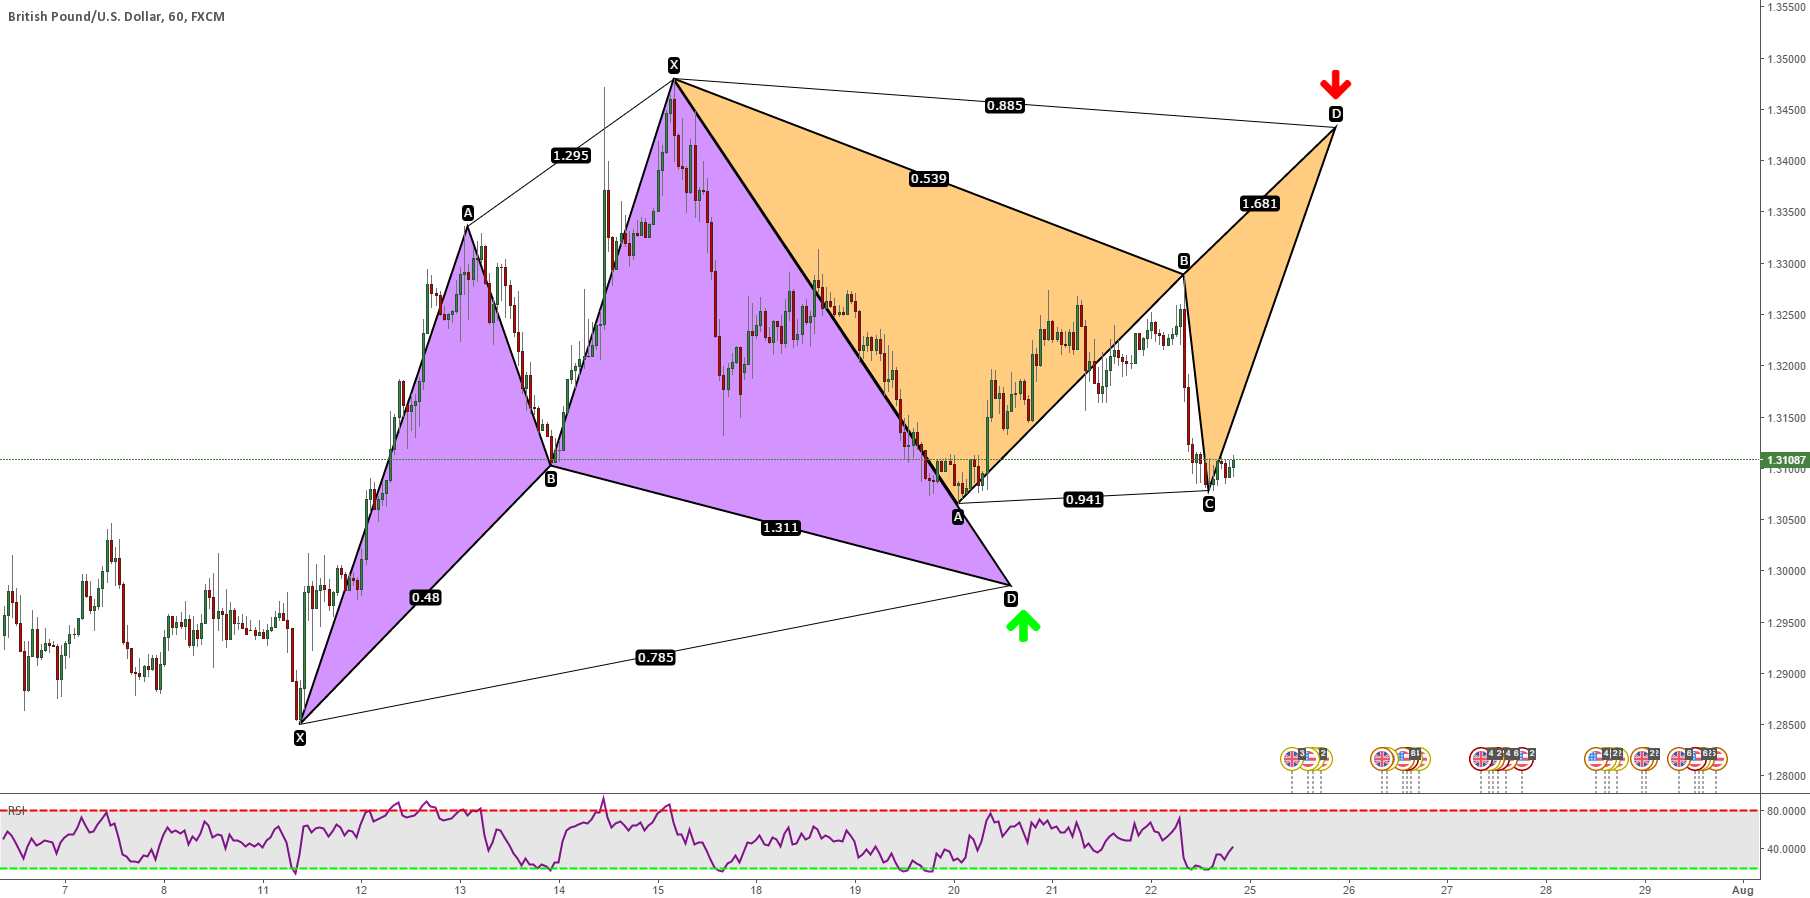 GBPUSD: Bullish Cypher - Bearish Bat - Price Trapped